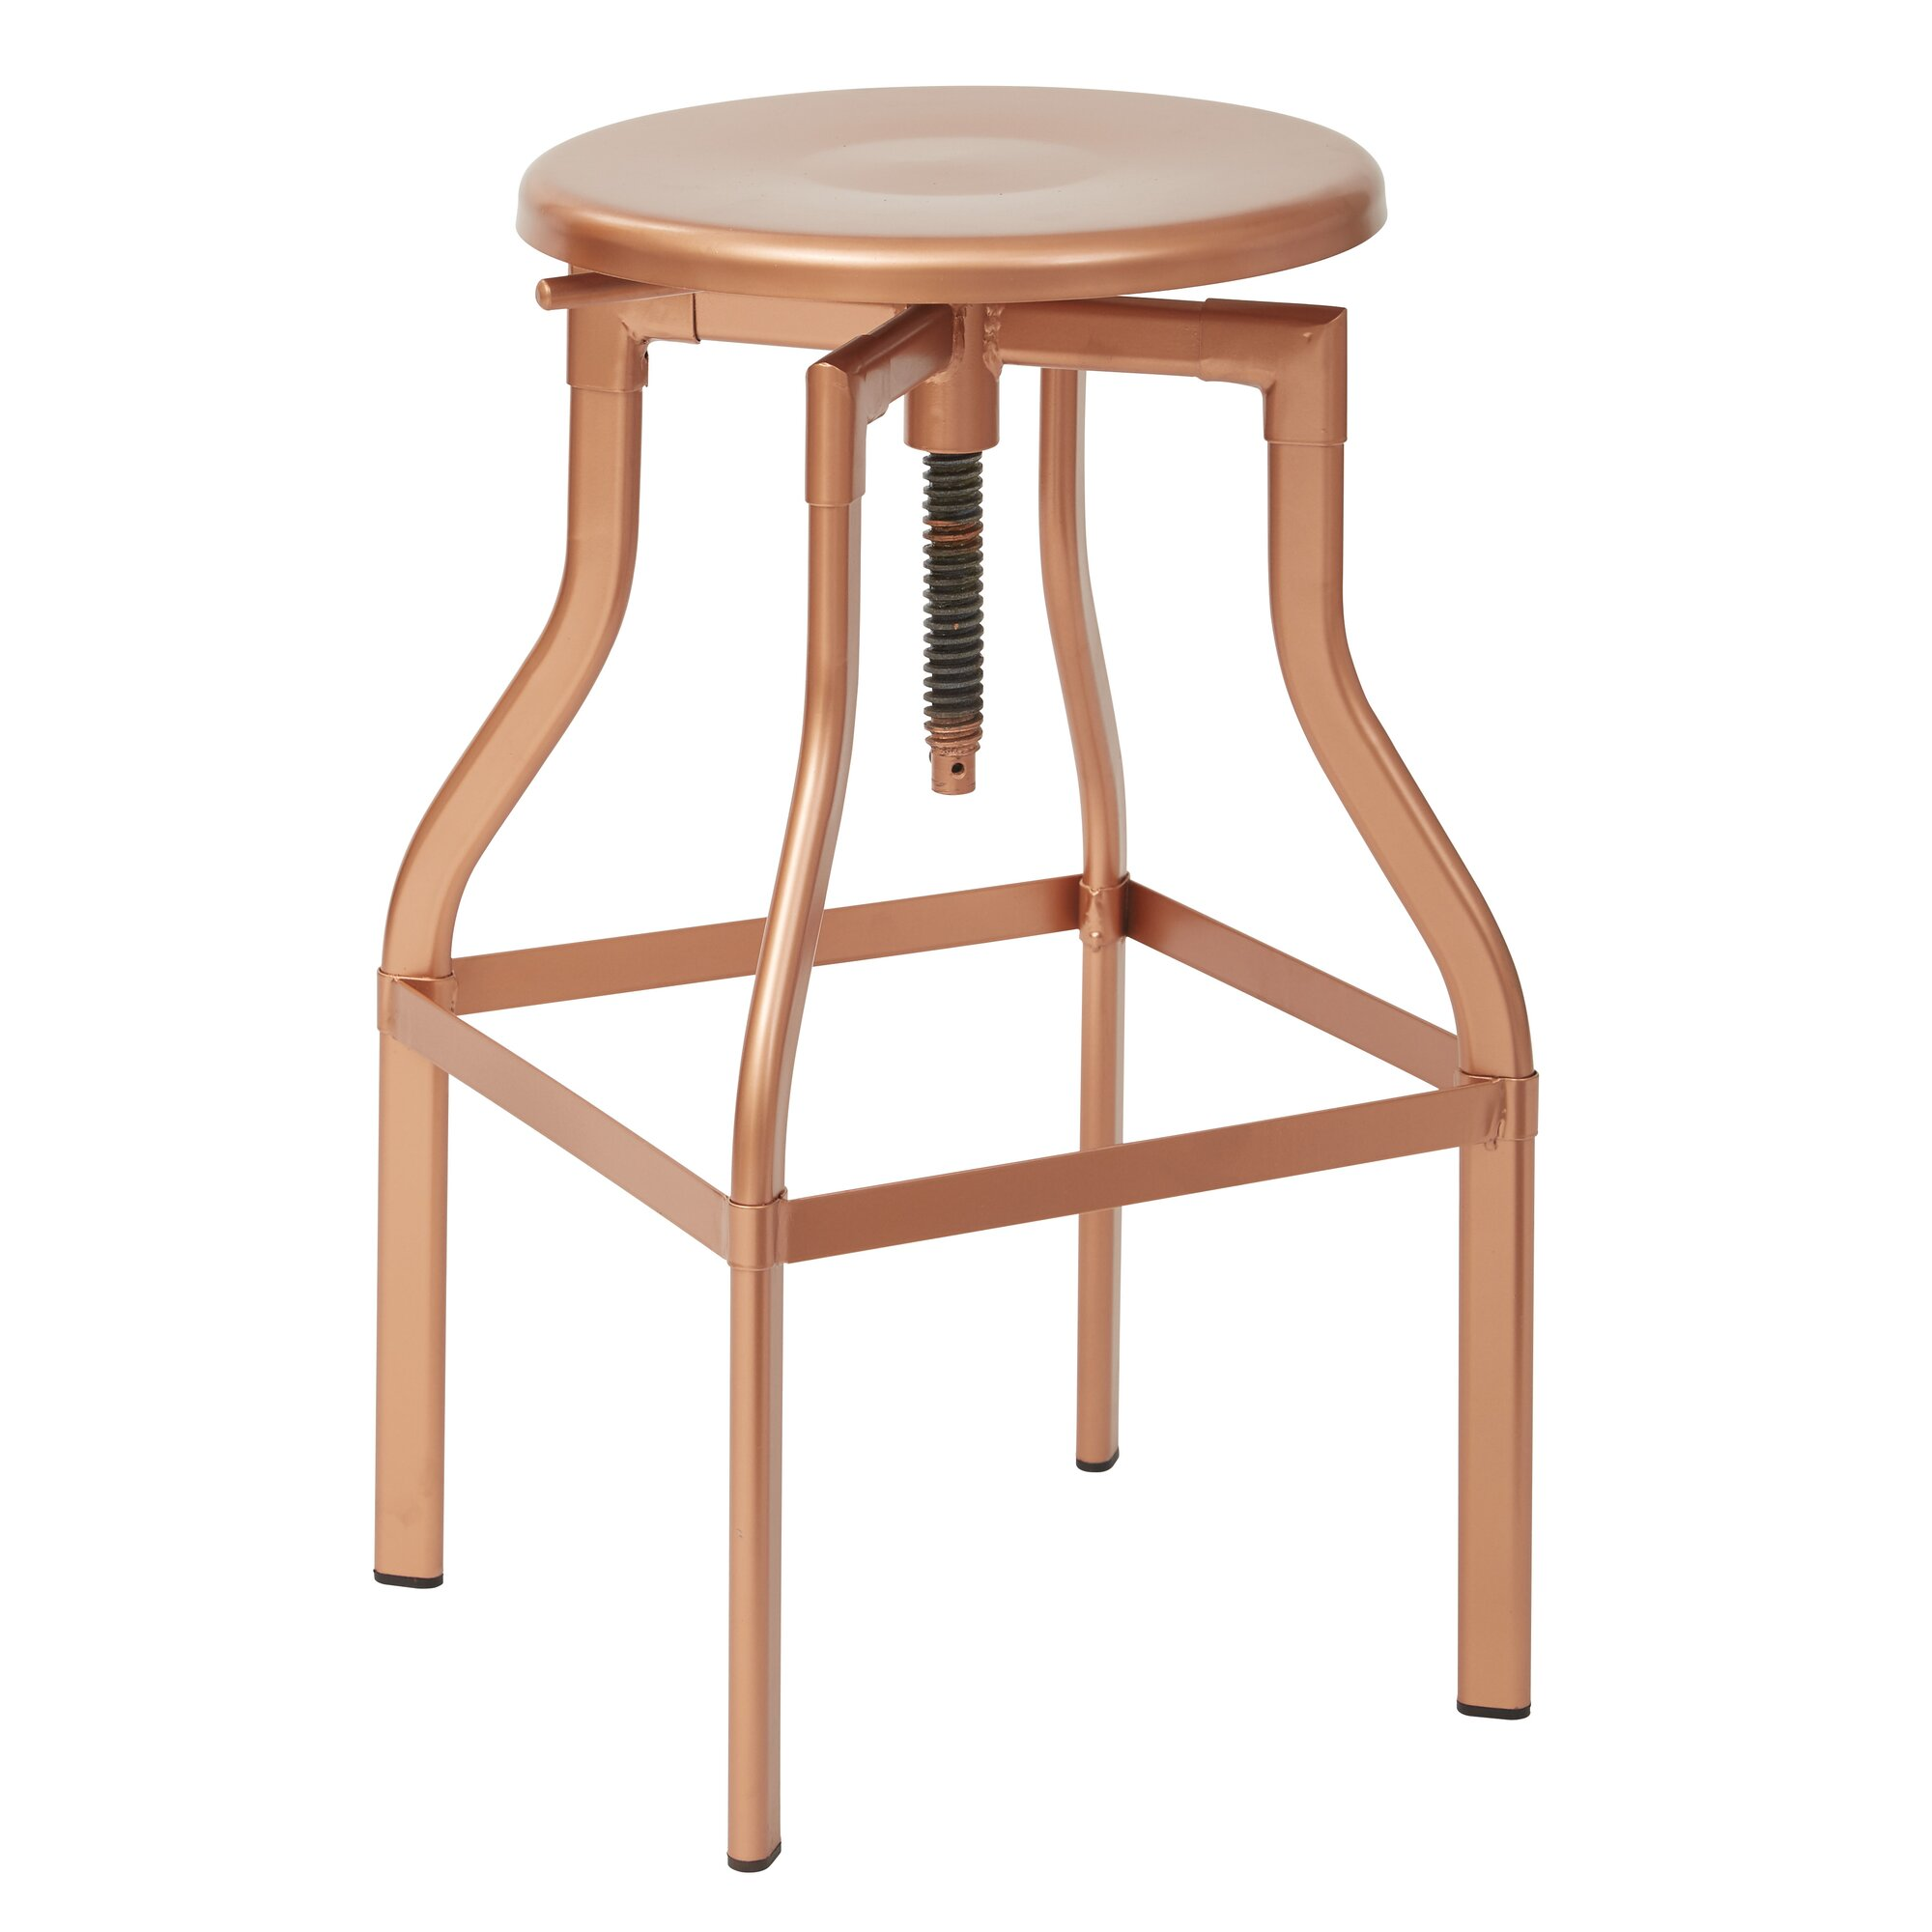 Osp Designs Eastvale Adjustable Height Swivel Bar Stool